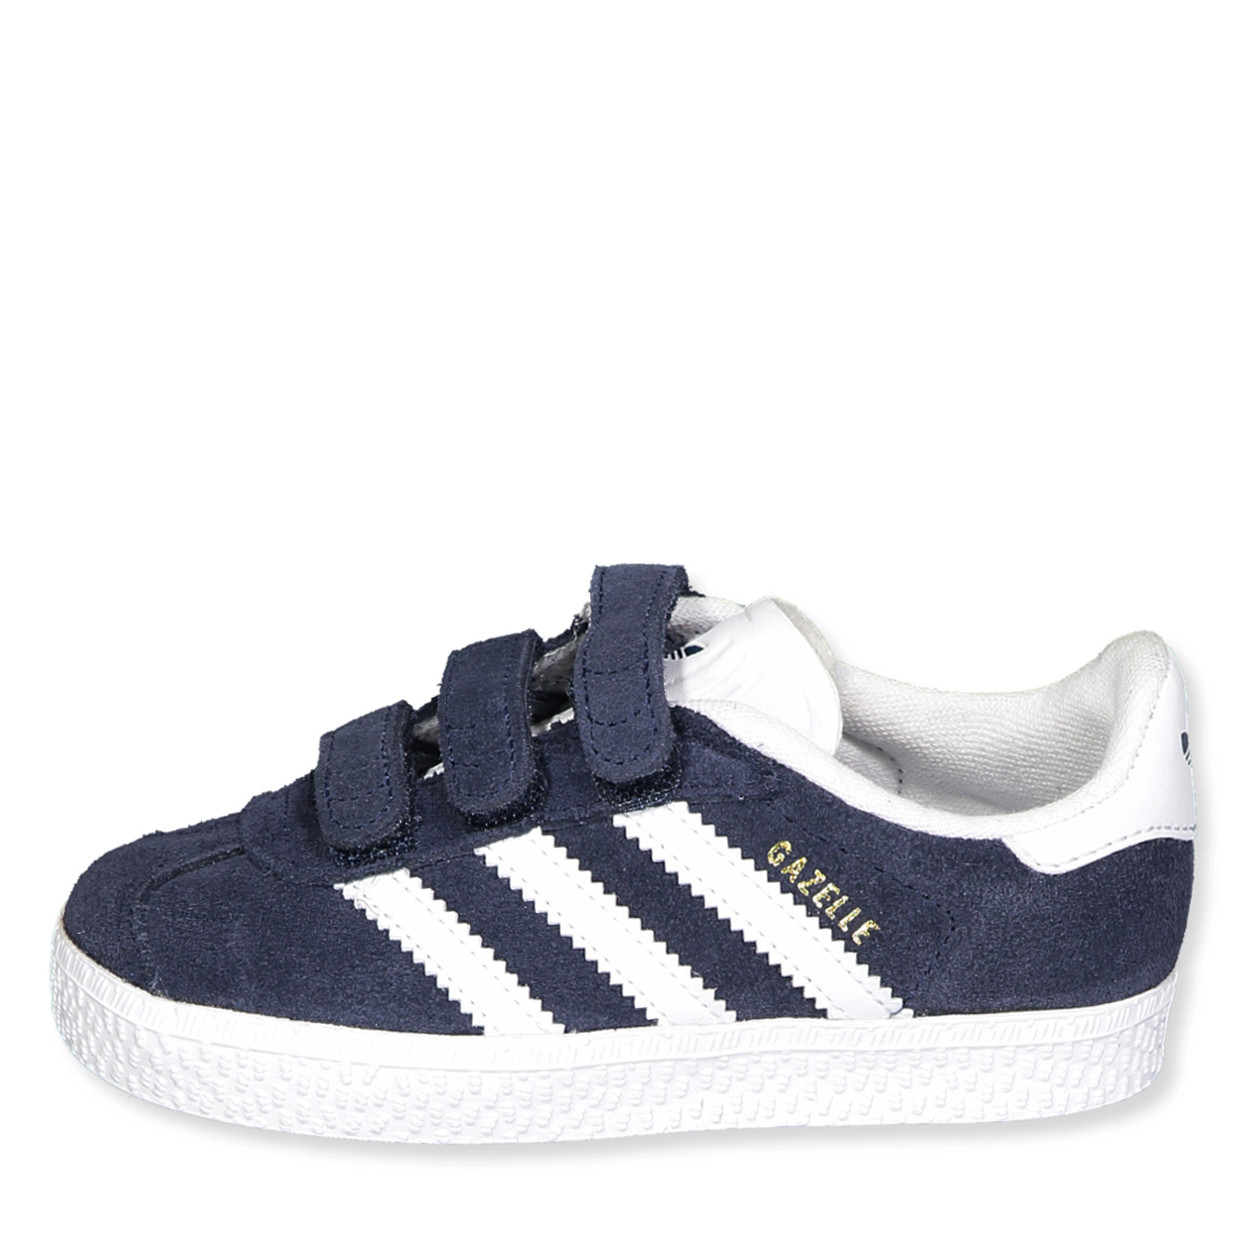 Details about Kids Adidas Gazelle 2 Infant Trainers Collegiate Navy Kids